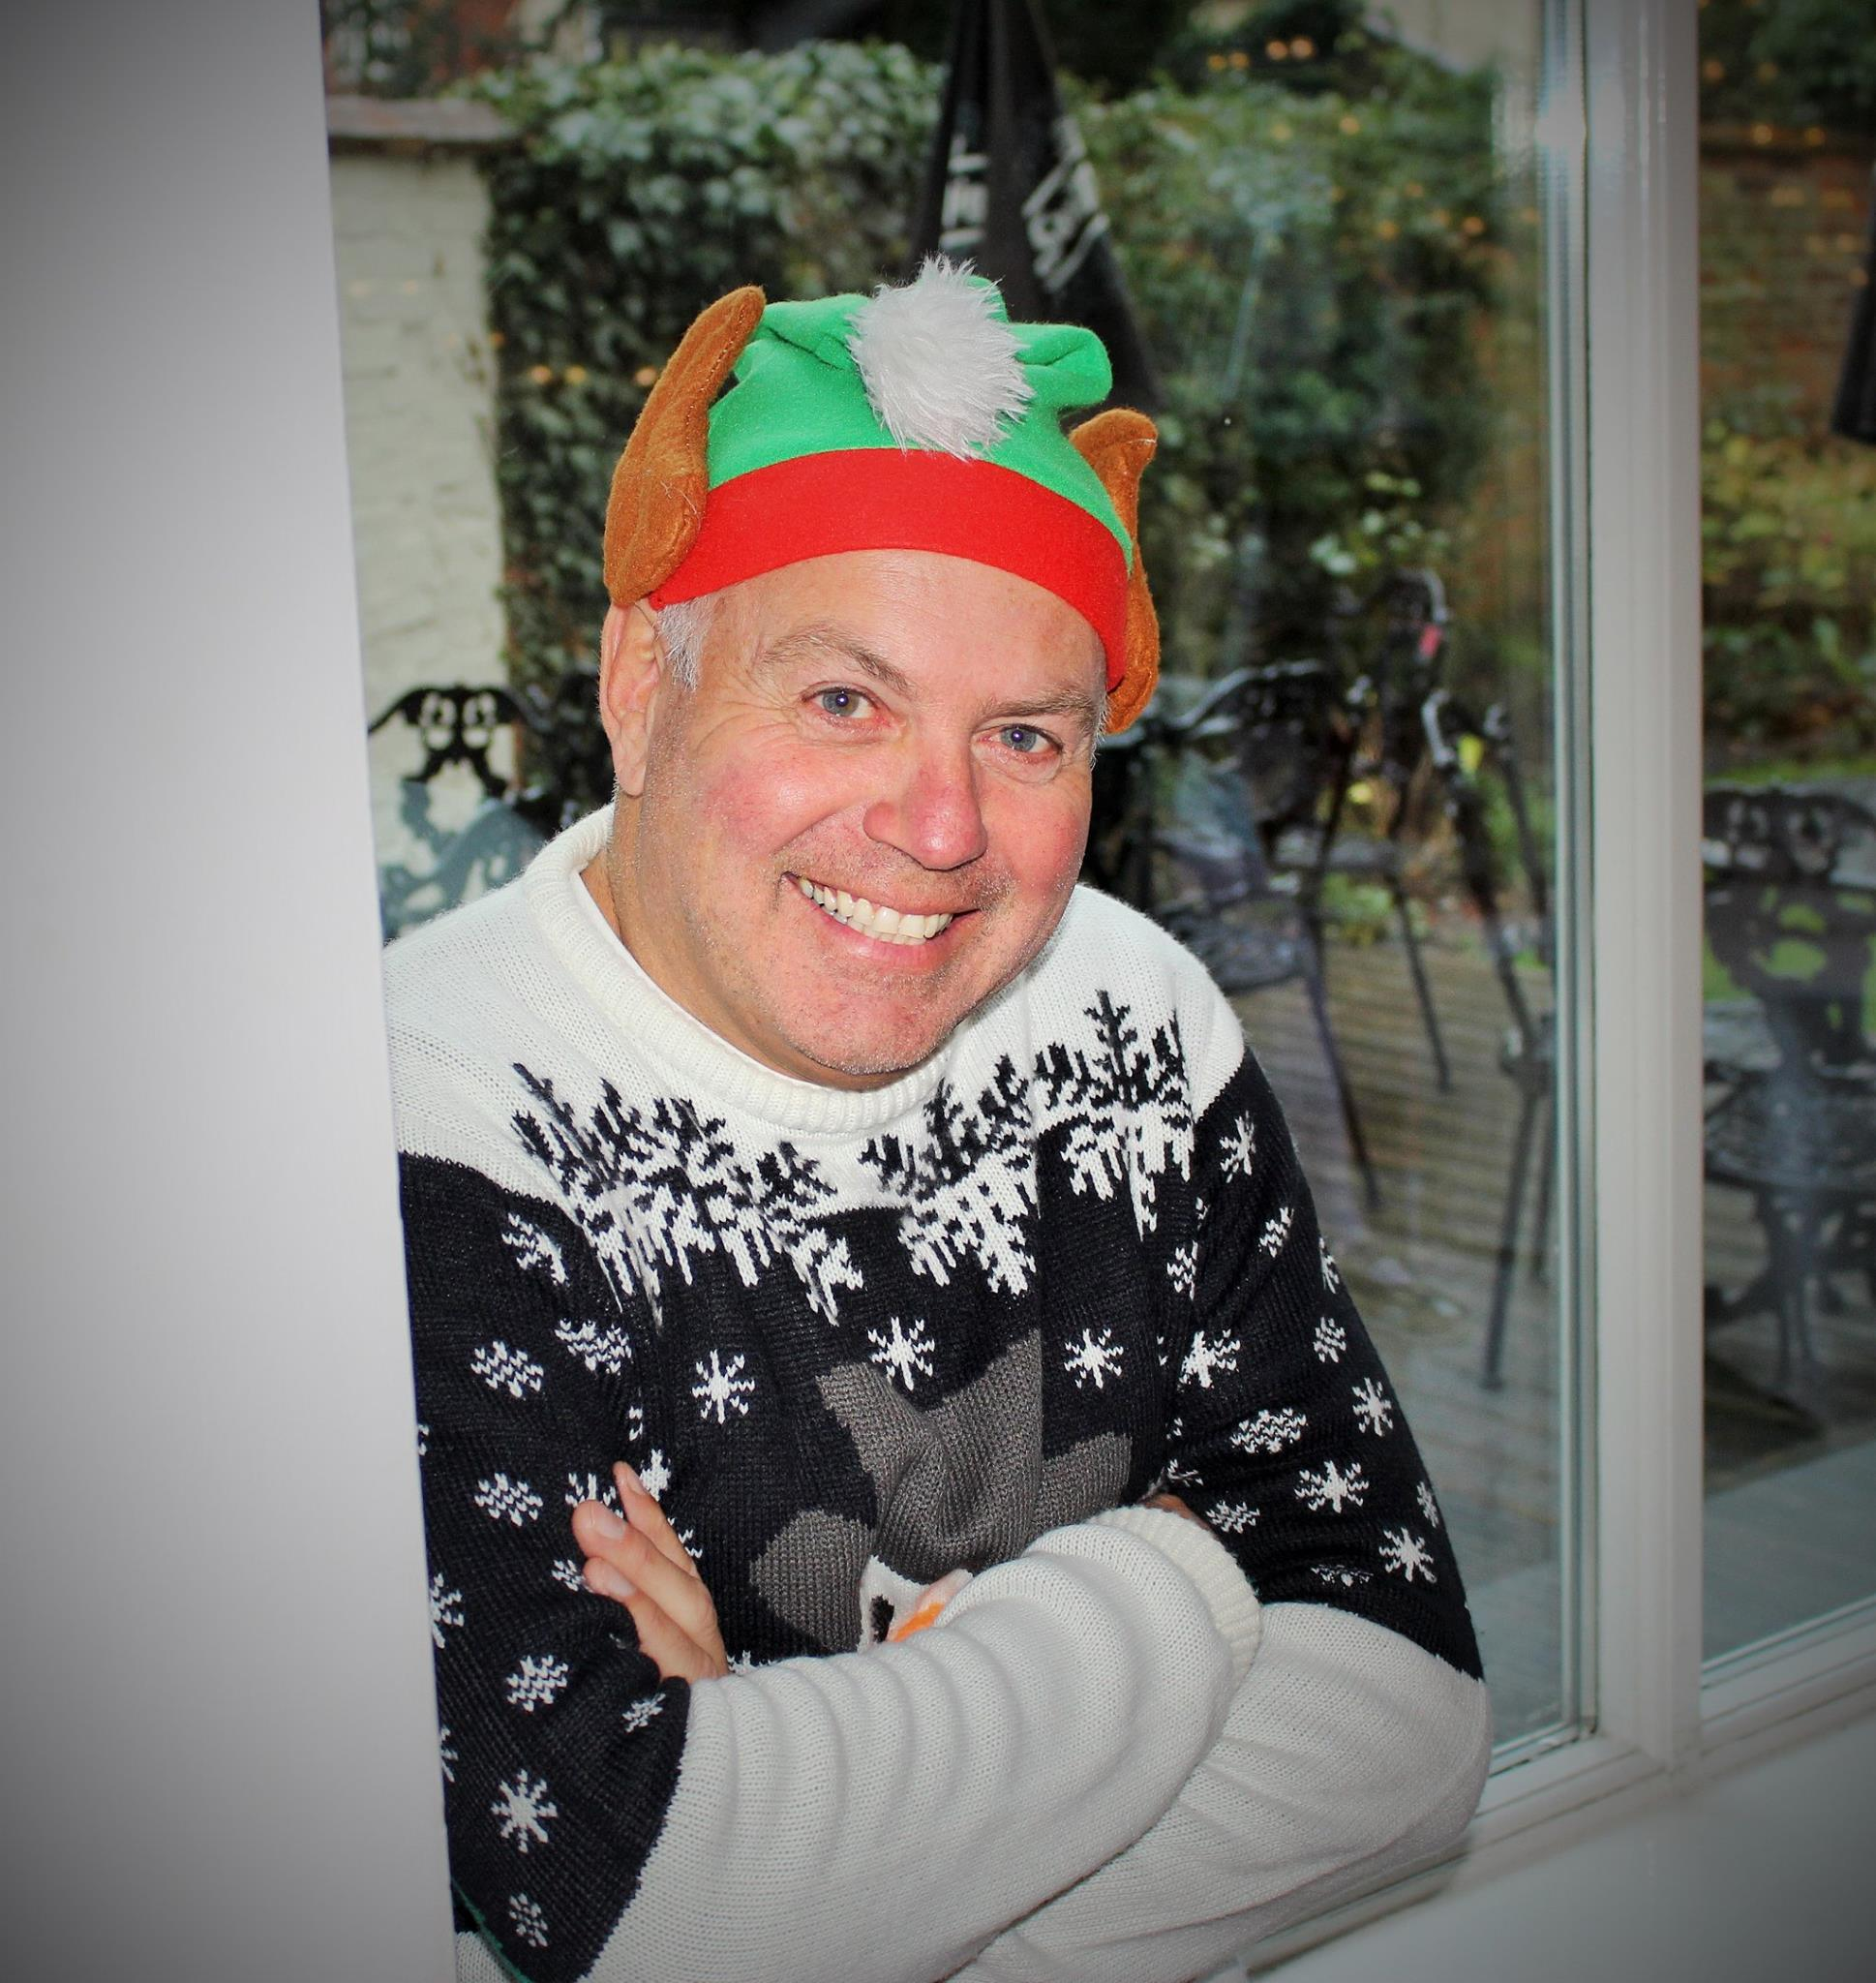 An older man smiling at the camera and wearing a Christmas jumper and a festive 'turkey' hat